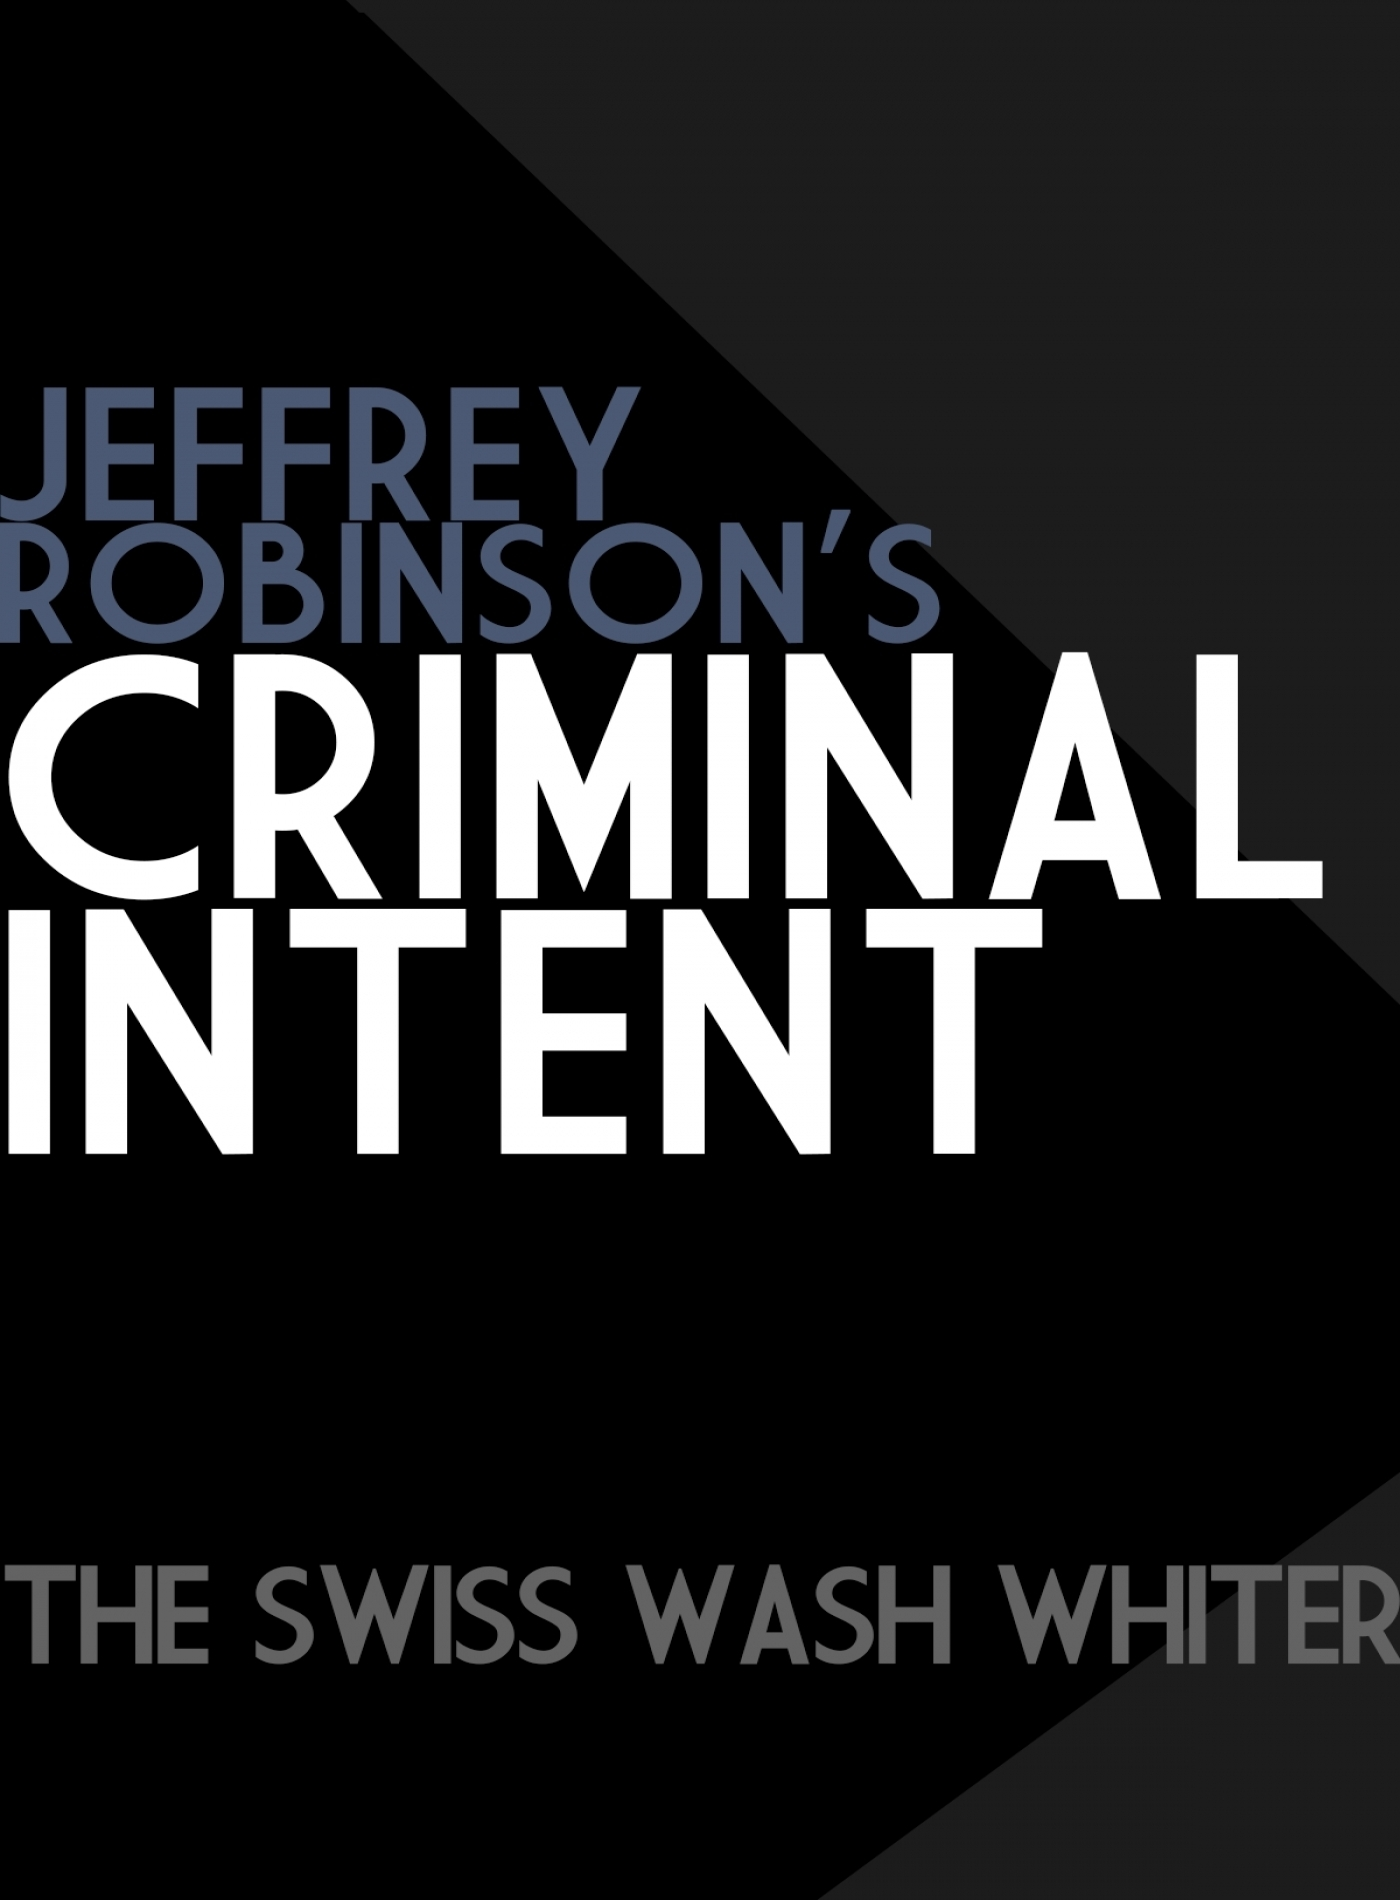 Jeffrey Robinson's Criminal Intent-The Swiss Wash Whiter